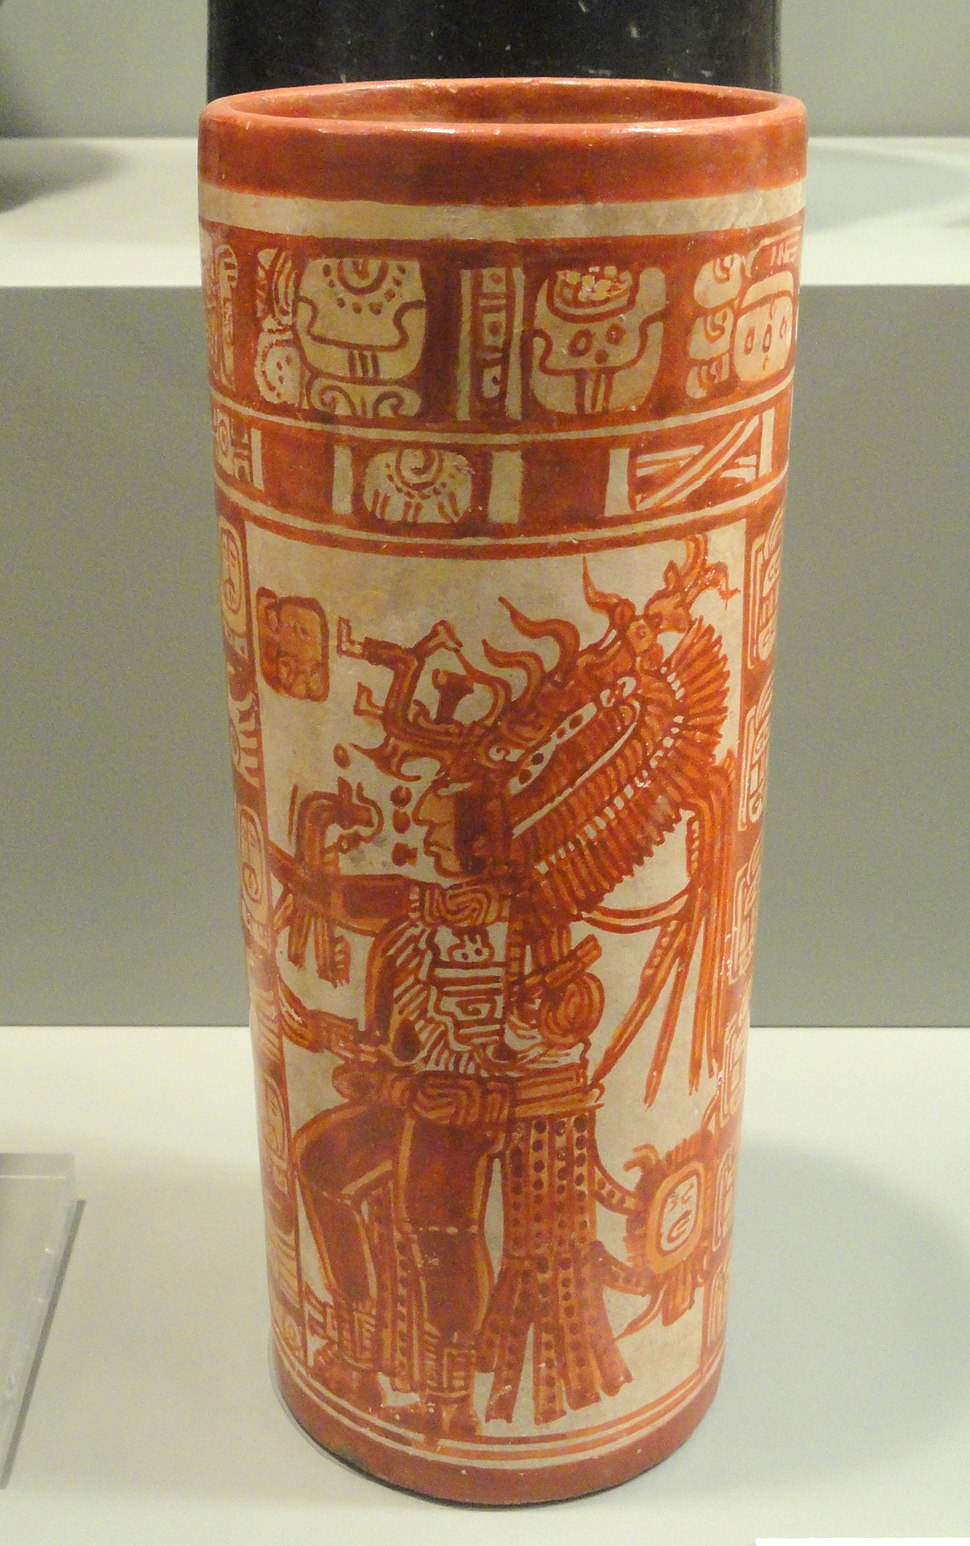 Cylinder Vase with dancing maize god, 675-725 AD, Maya culture, eastern Peten lowlands, Guatemala or Belize, earthenware with slip - Gardiner Museum, Toronto - DSC01183